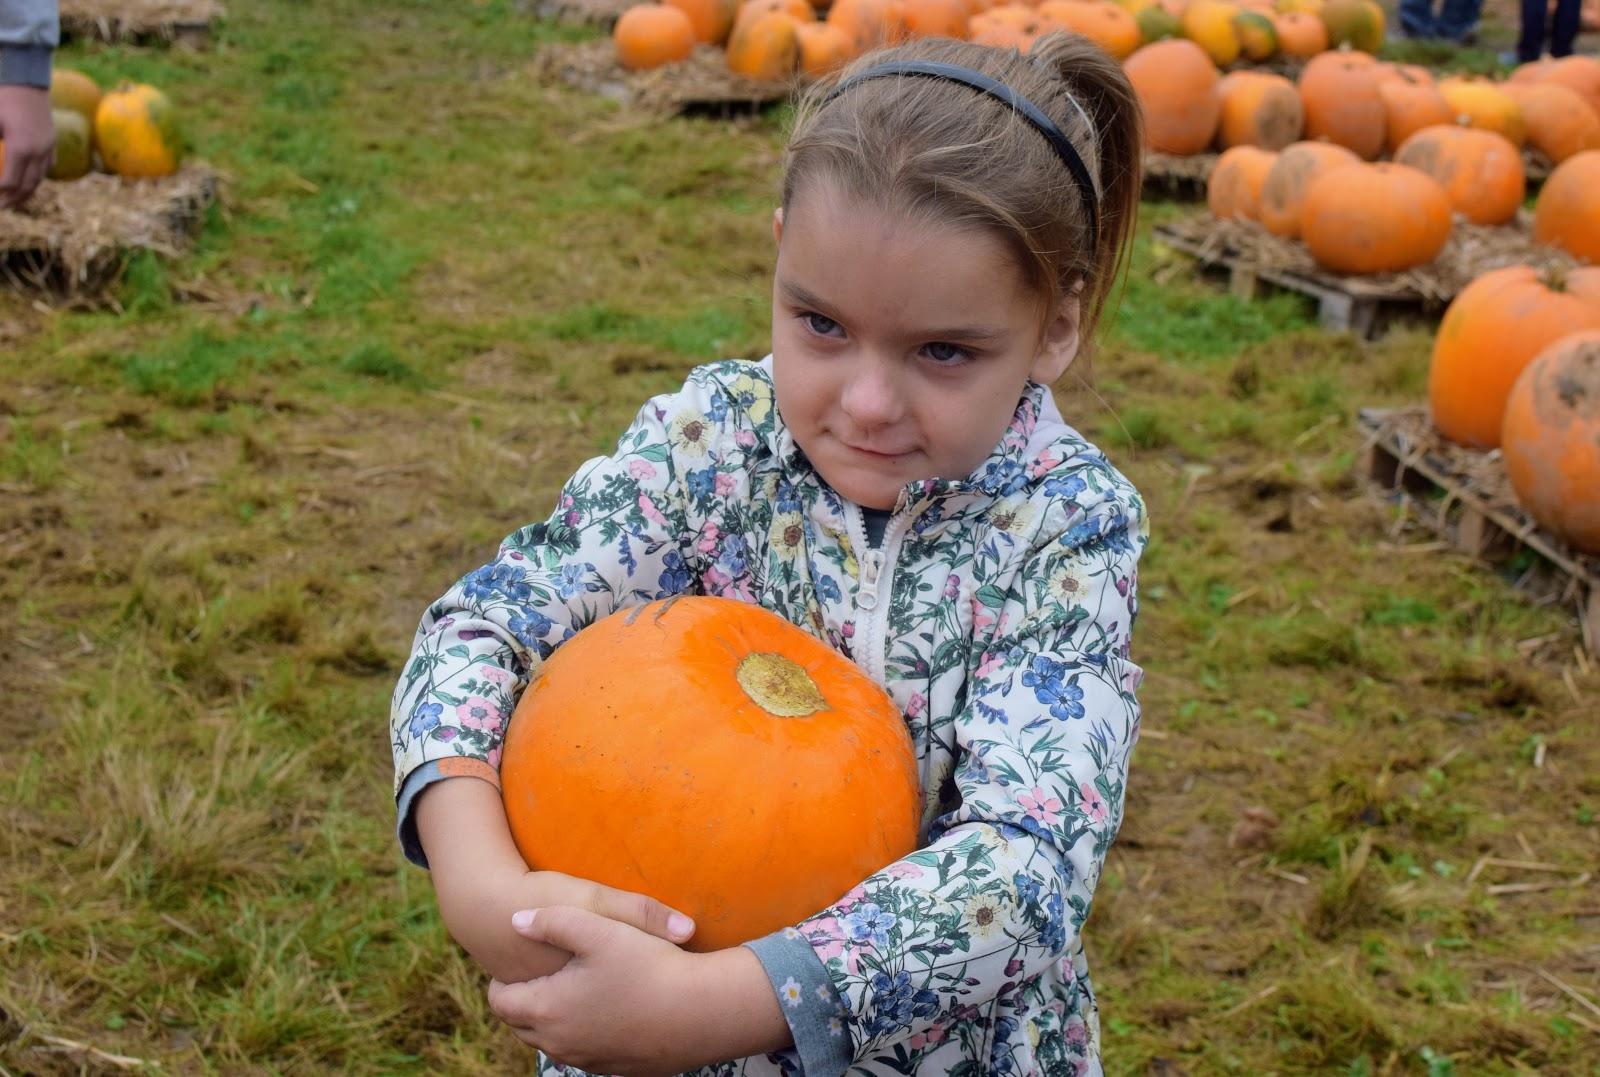 , Pumpkin Picking at Brooksgrove Farm, October 2017